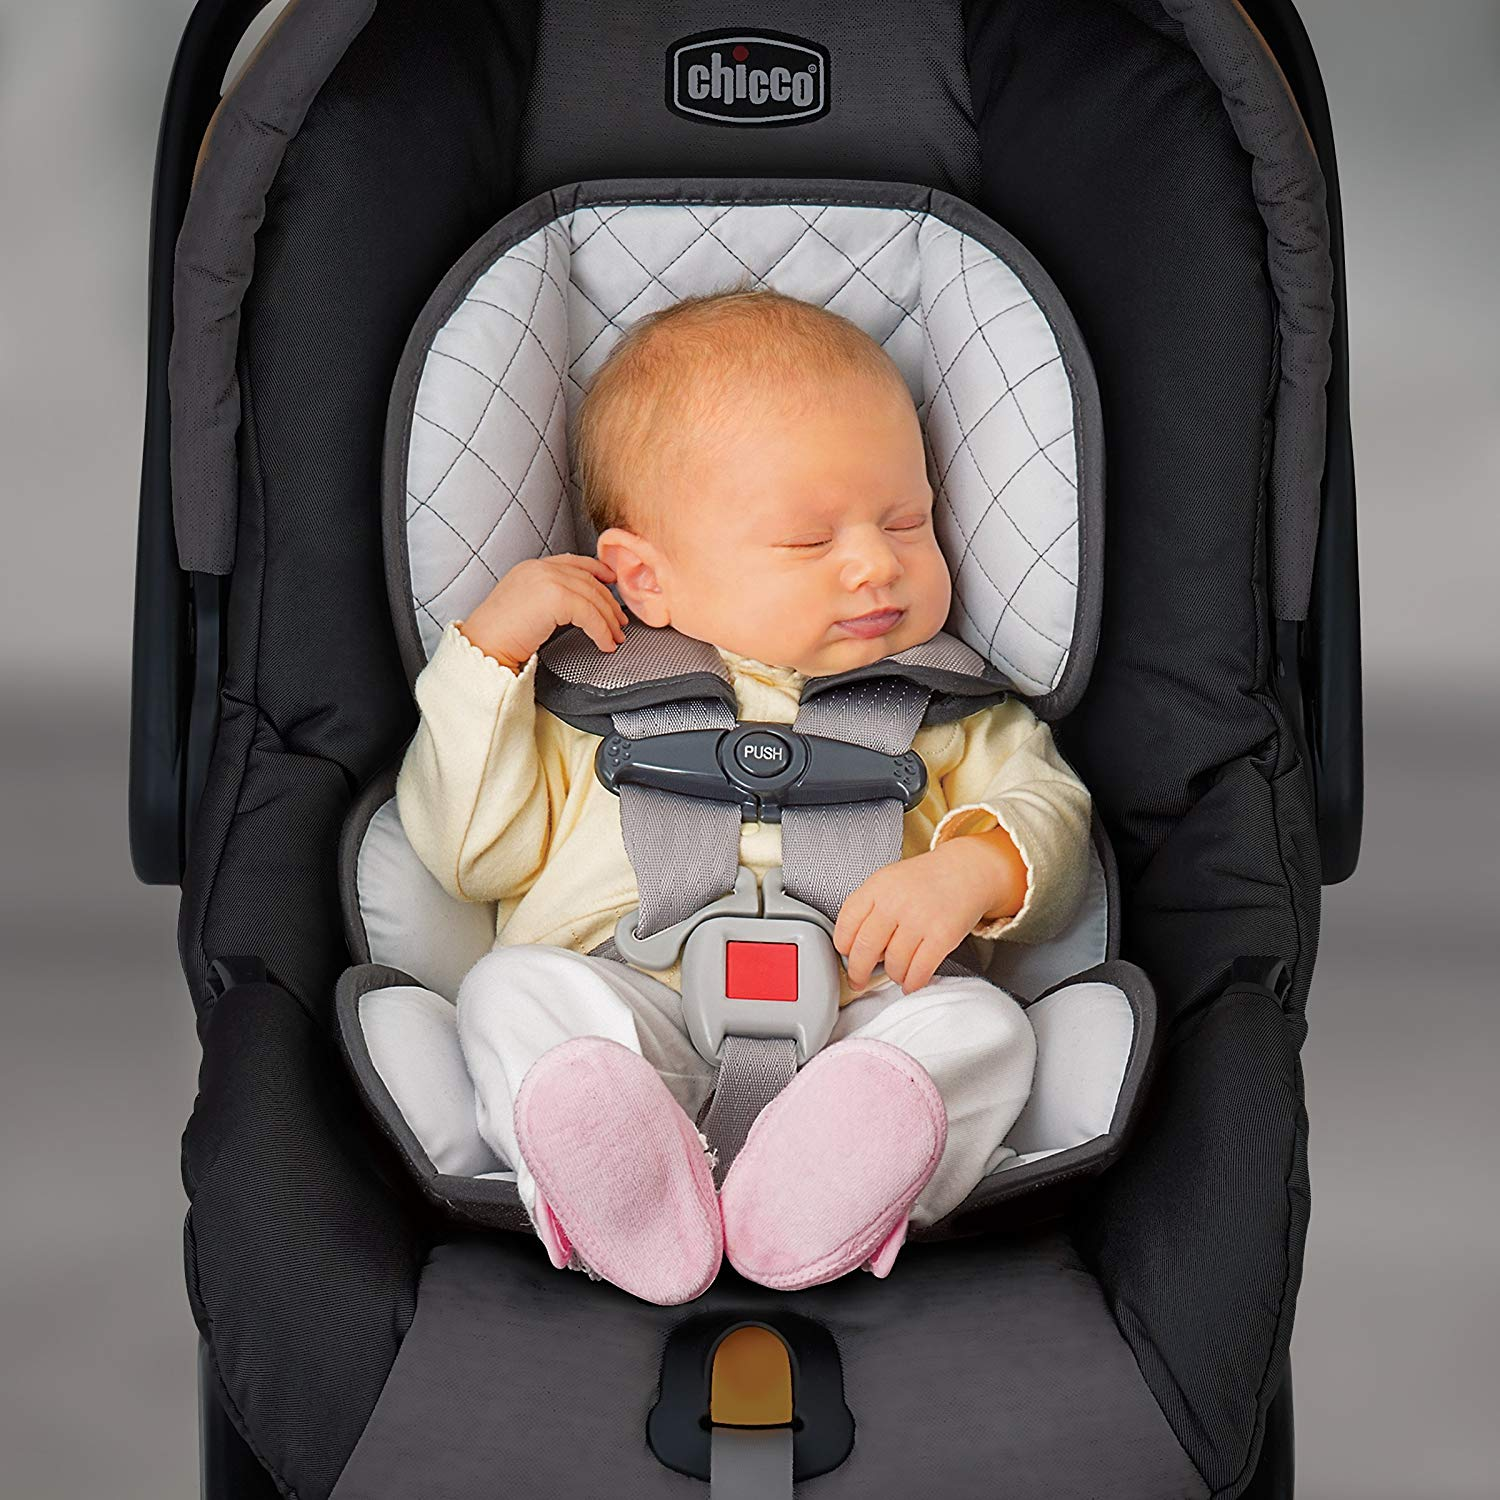 Cool Is Chicco Keyfit 30 The Best Choice For Your Infant Child Creativecarmelina Interior Chair Design Creativecarmelinacom